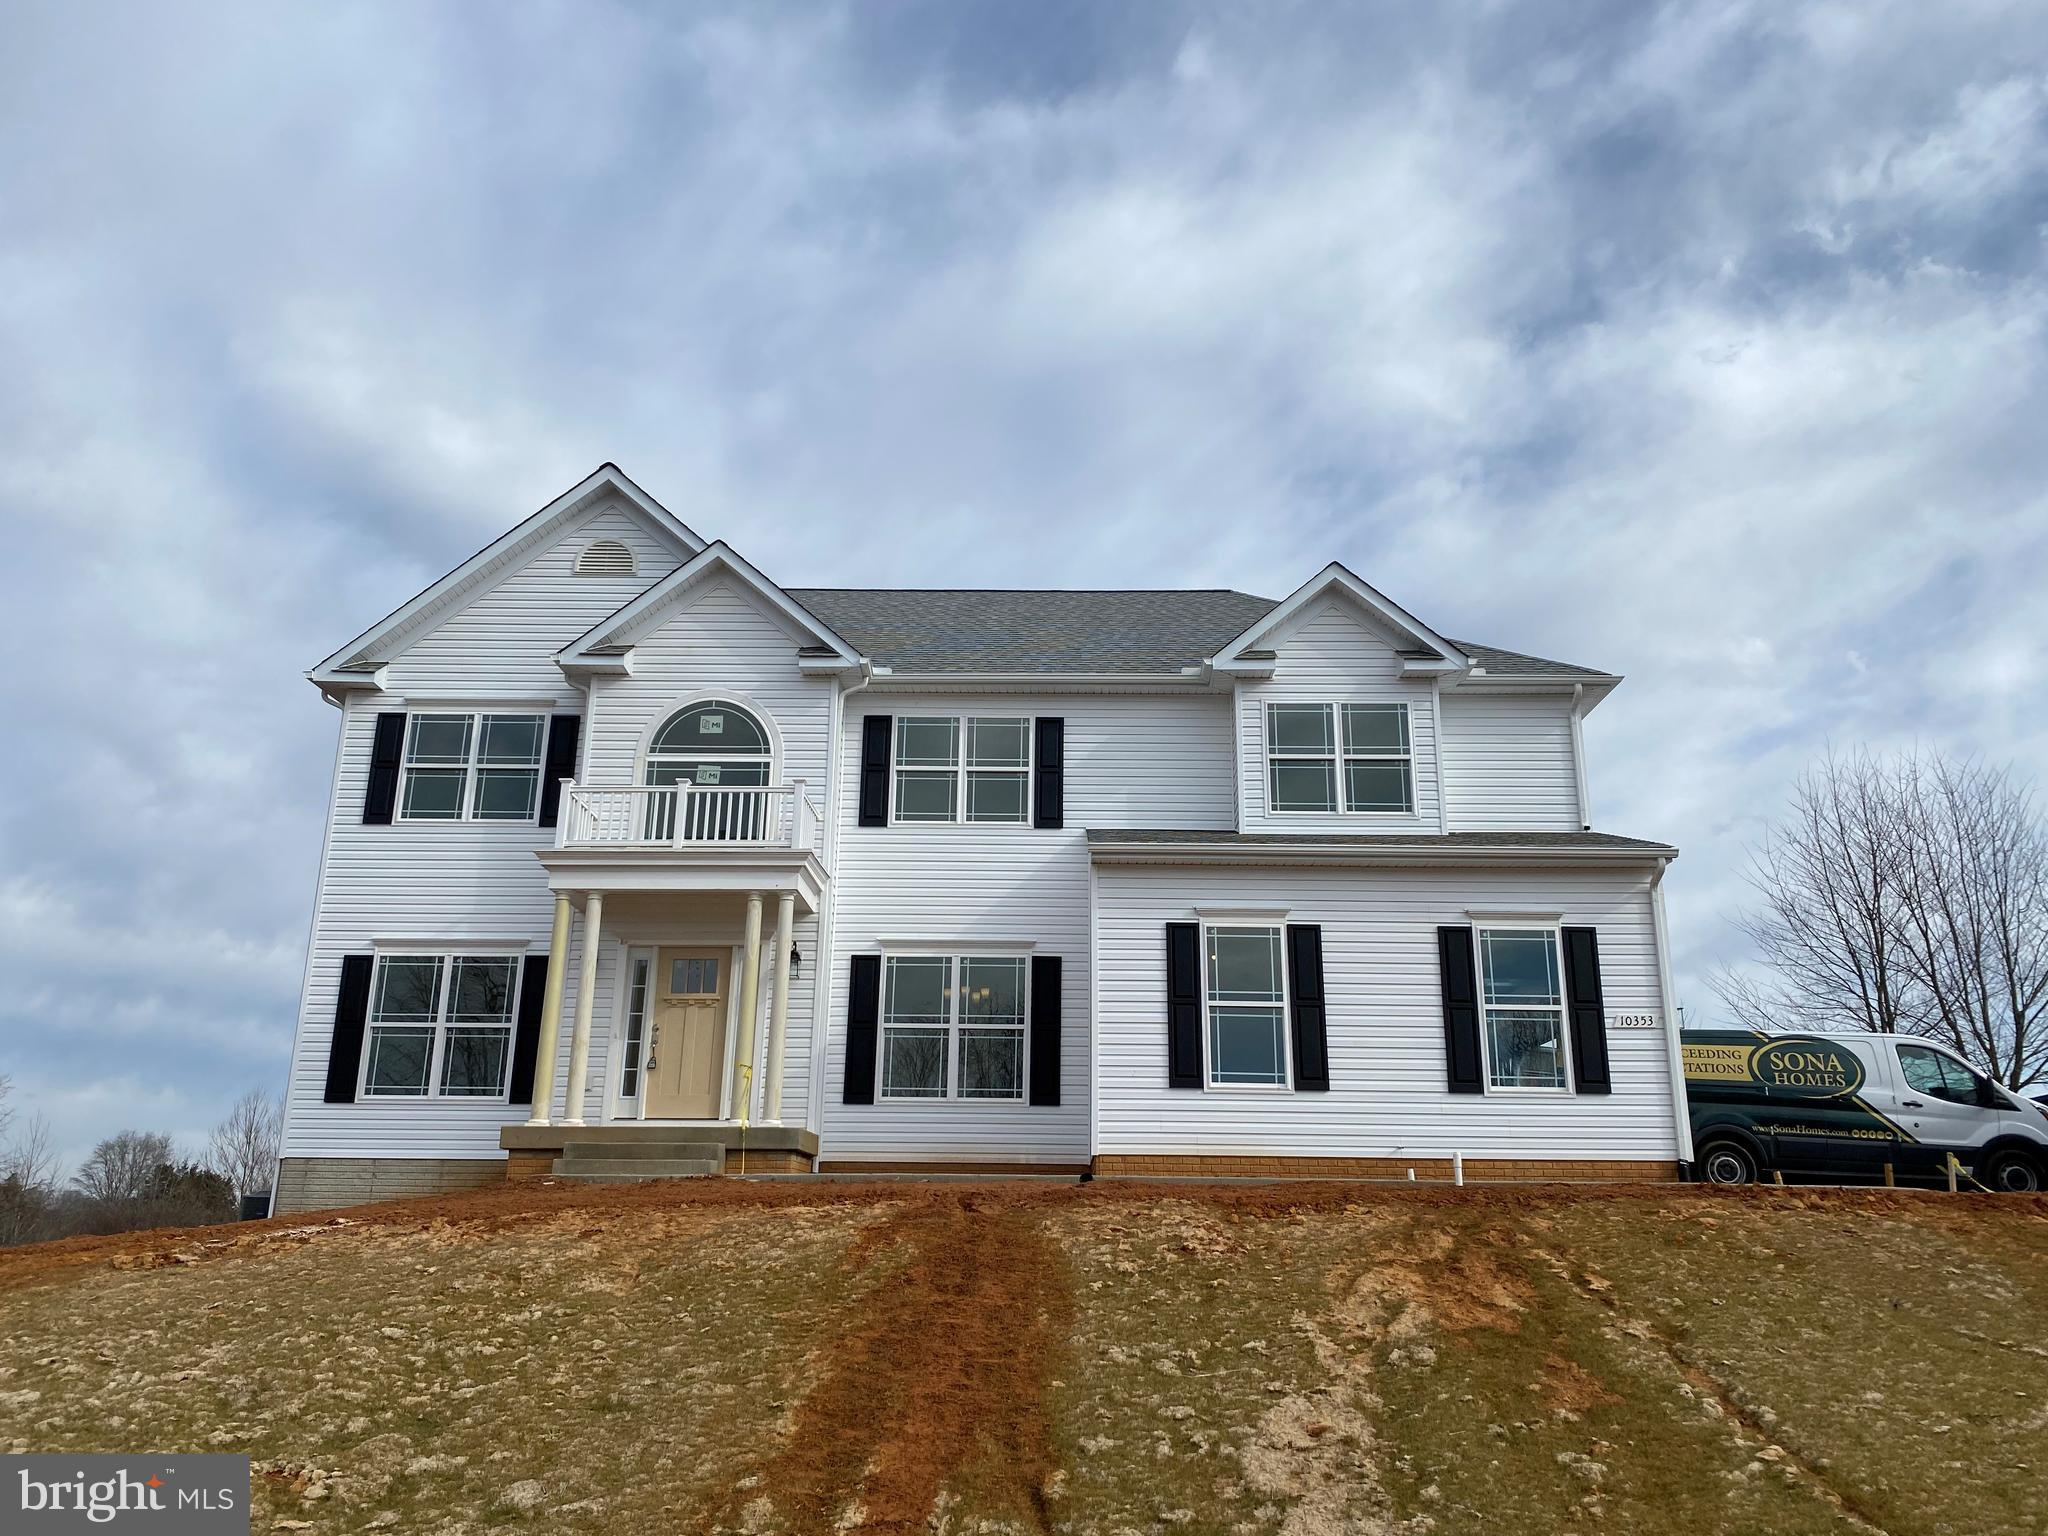 LOCATED RIGHT OF ROUTE 29 IN CULPEPER! NEW HOME CONSTRUCTION WITH INCLUDES OAK STAIR CASE, PORTICO PORCH, GRANITE KITCHEN COUNTERTOPS, LOCATION IS MINUTES AWAY FROM THE TOWN OF CULPEPER, BULLNOSE DRYWALL CORNERS, CROWN AND CHAIR MOLDING IN DINING ROOM, SECOND FLOOR LAUNDRY ROOM,  NINE FOOT CEILINGS ON THE MAIN FLOOR, GAS FIREPLACE, BEAUTIFUL CRAFTSMAN EXTERIOR,  DOUBLE PAINED ARGON WINDOWS, AND FINISHED RECREATION ROOM AND BATHROOM. NEW HOME THAT COMES WITH 2-10 WARRANTY. SELLER TO PROVIDE $5000 OFF CLOSING COST WHEN USING A PREFERRED LENDER!